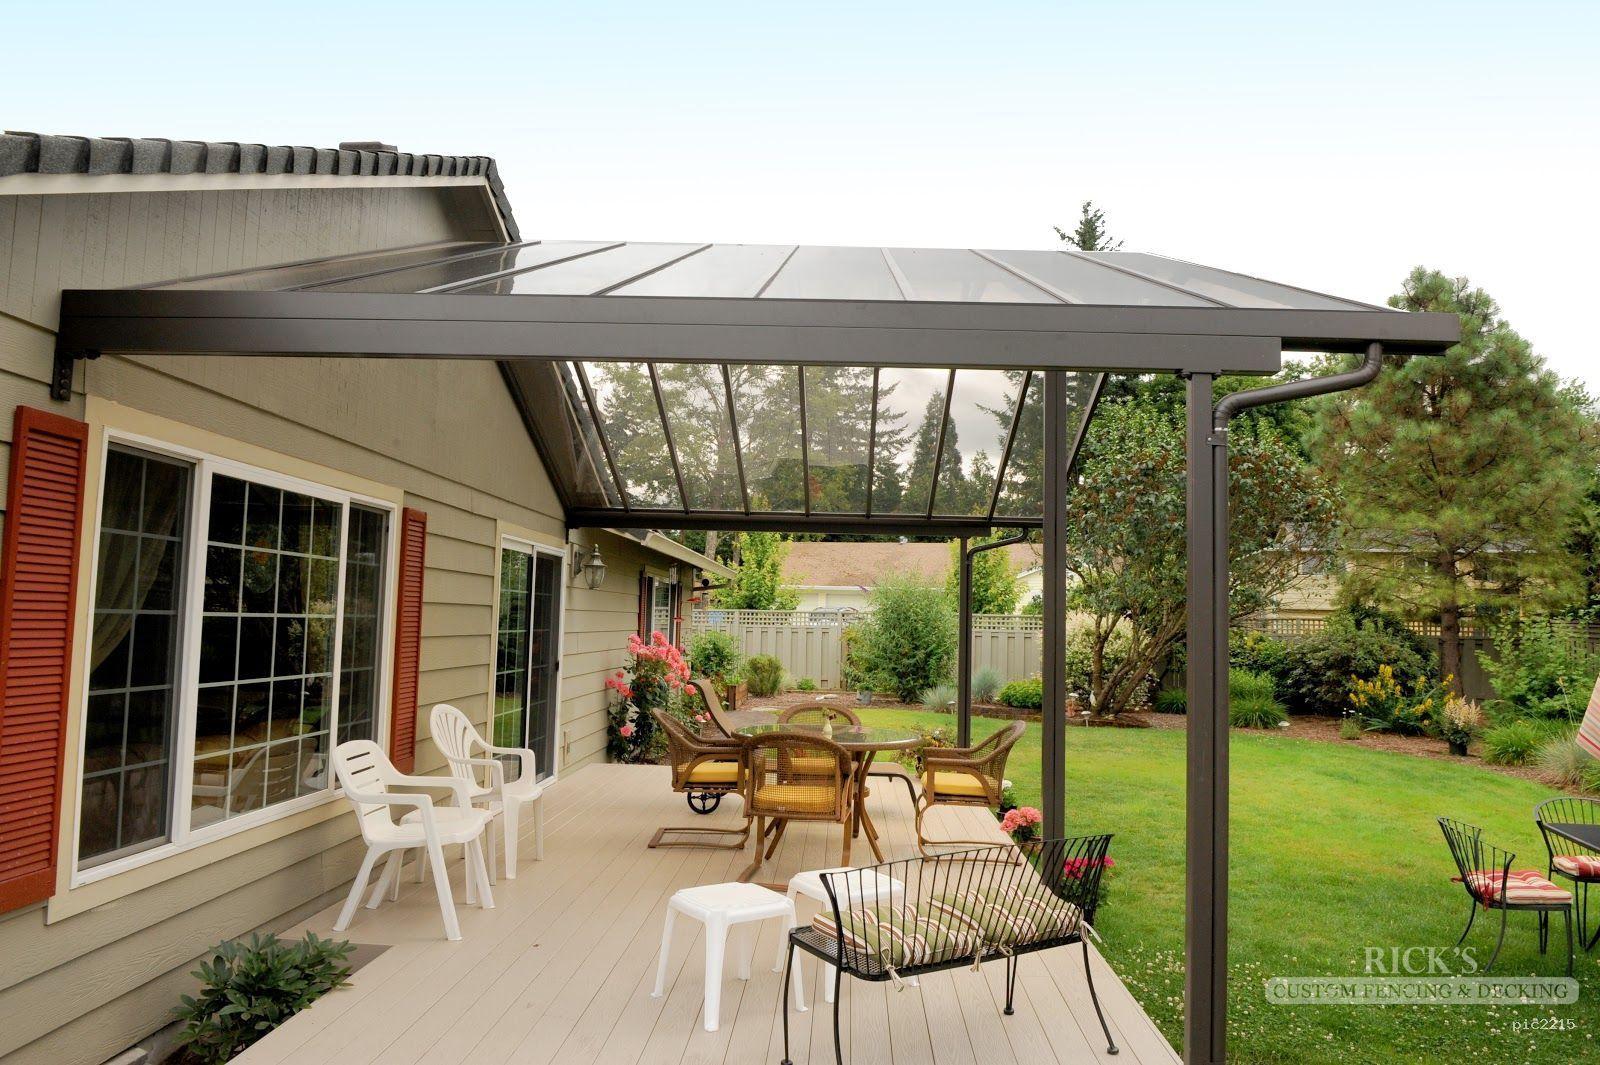 Aluminum Patio Covers \u0026 Aluminum Patio Cover Kits | Ricksfencing.com - Need a gutter system like this & Aluminum Patio Covers \u0026 Aluminum Patio Cover Kits | Ricksfencing.com ...